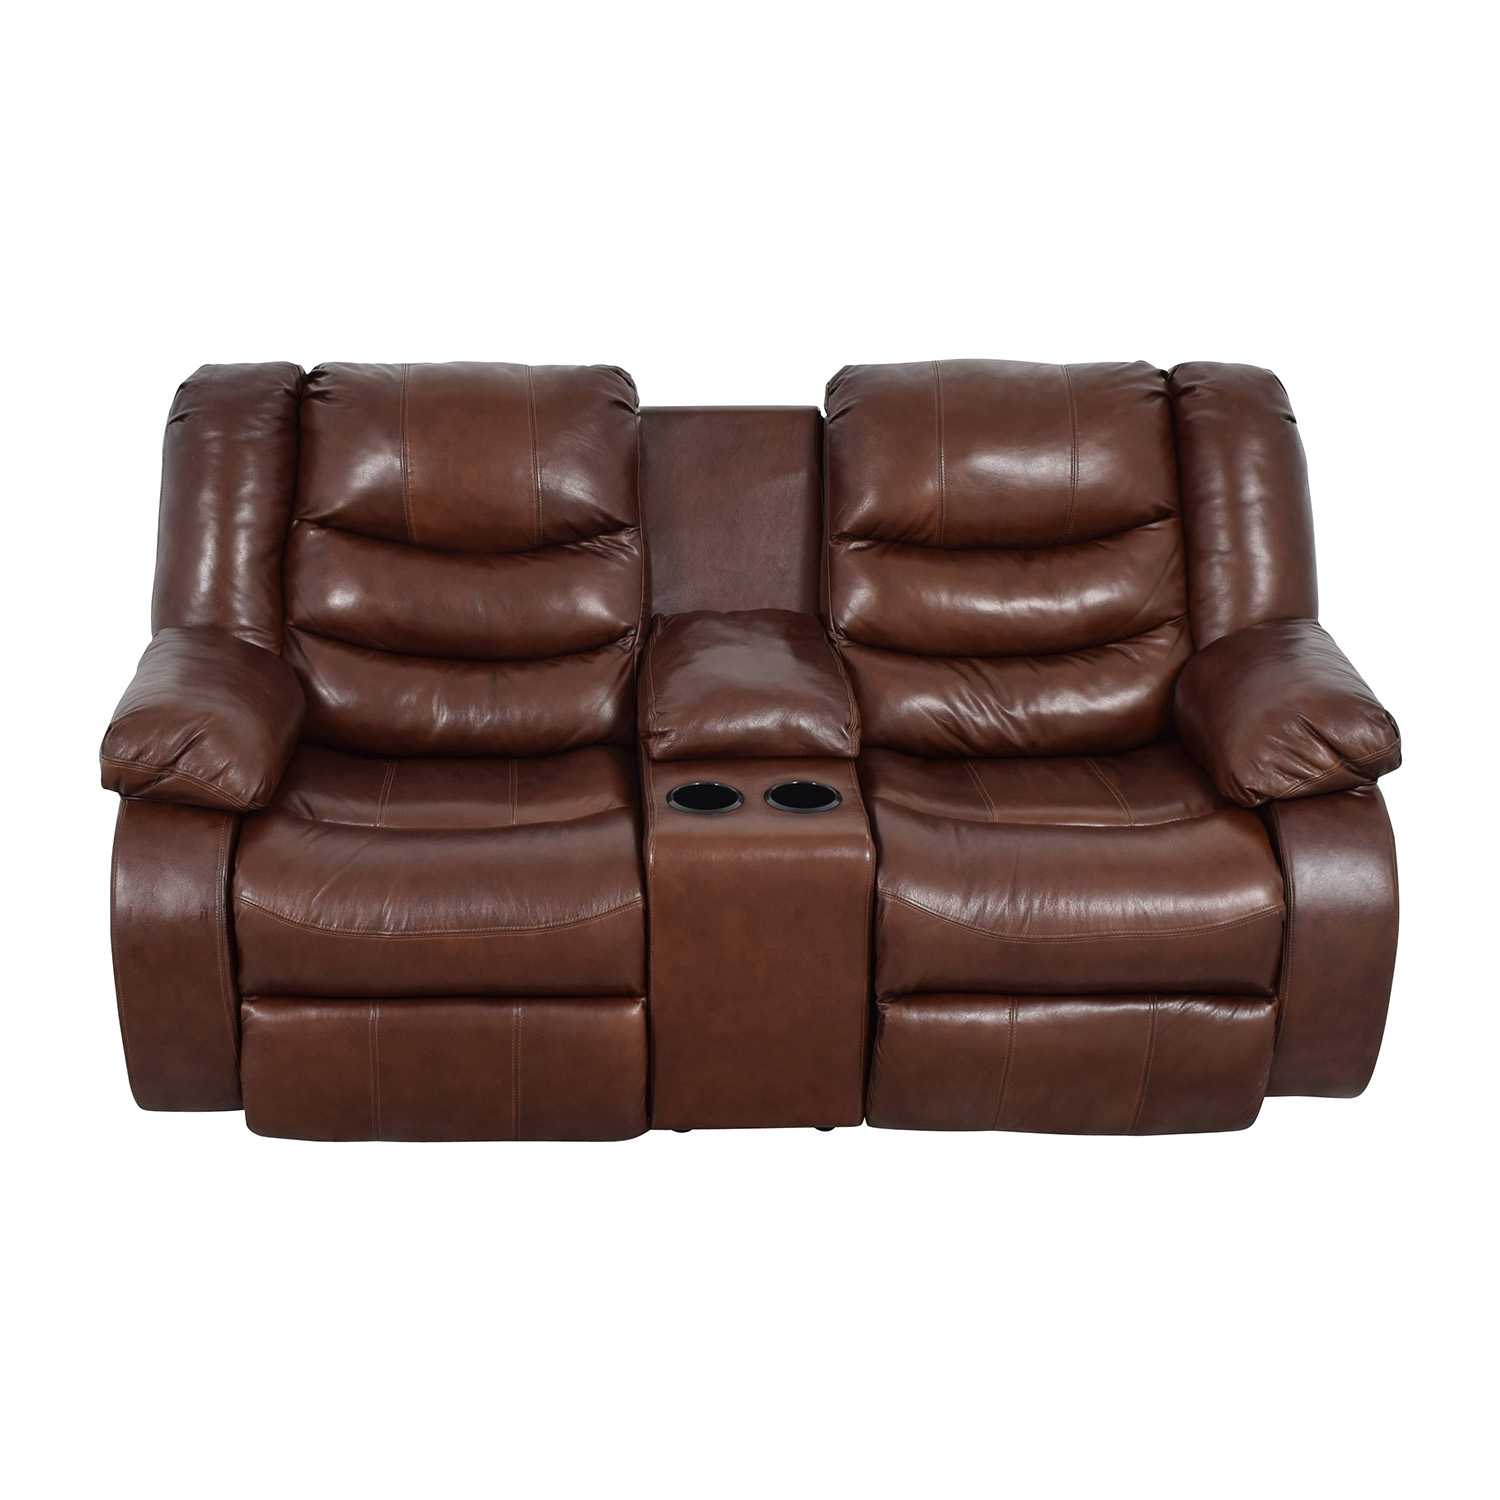 90 off ashley furniture ashley furniture brown leather reclining